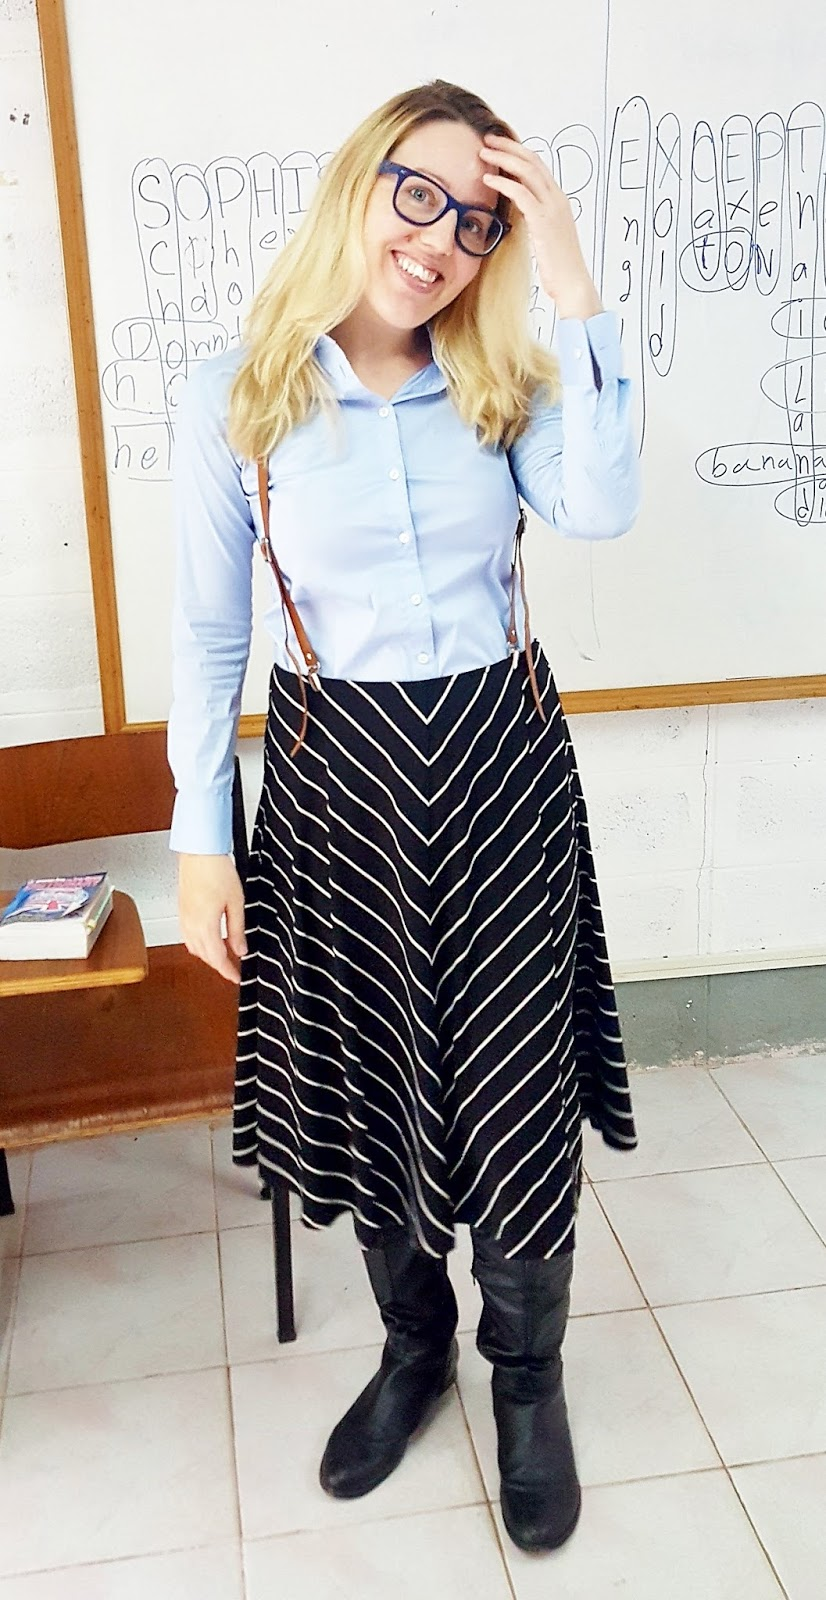 cd81a52eb1c English teacher in Thailand wearing a long-sleeved blue button-up shirt and  a